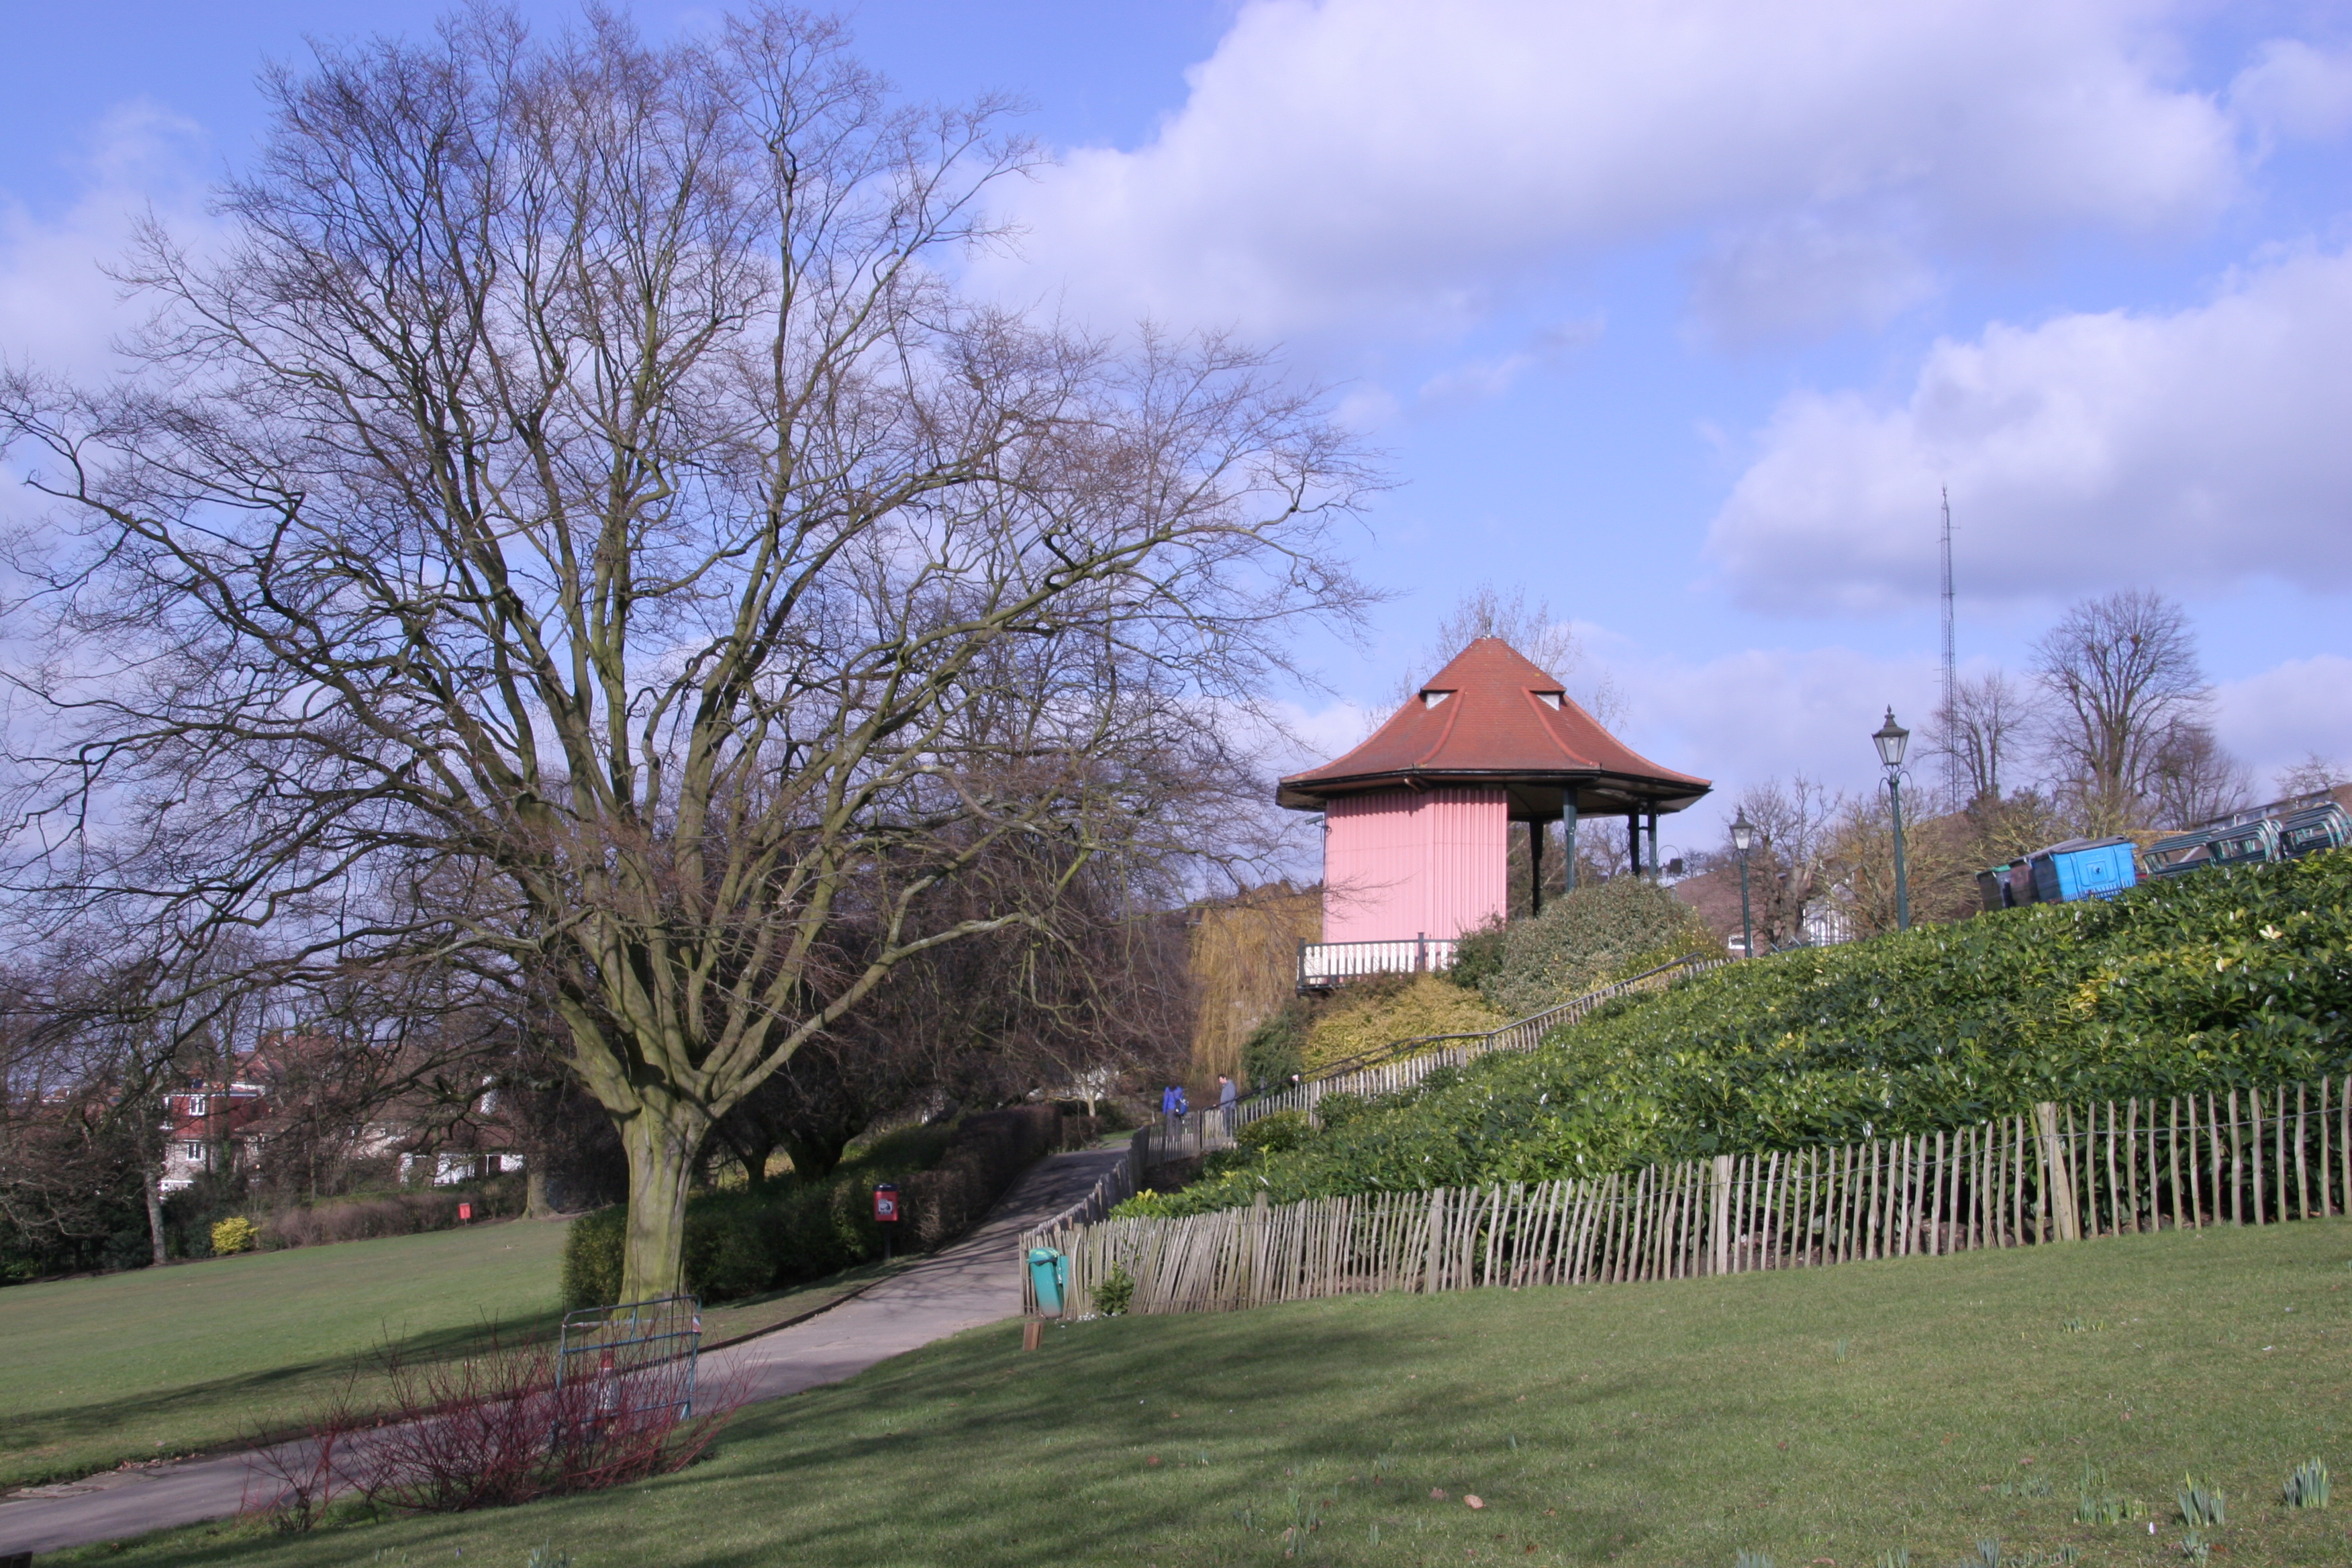 Horniman museum gardens - File The Bandstand Horniman Museum Gardens Geograph Org Uk